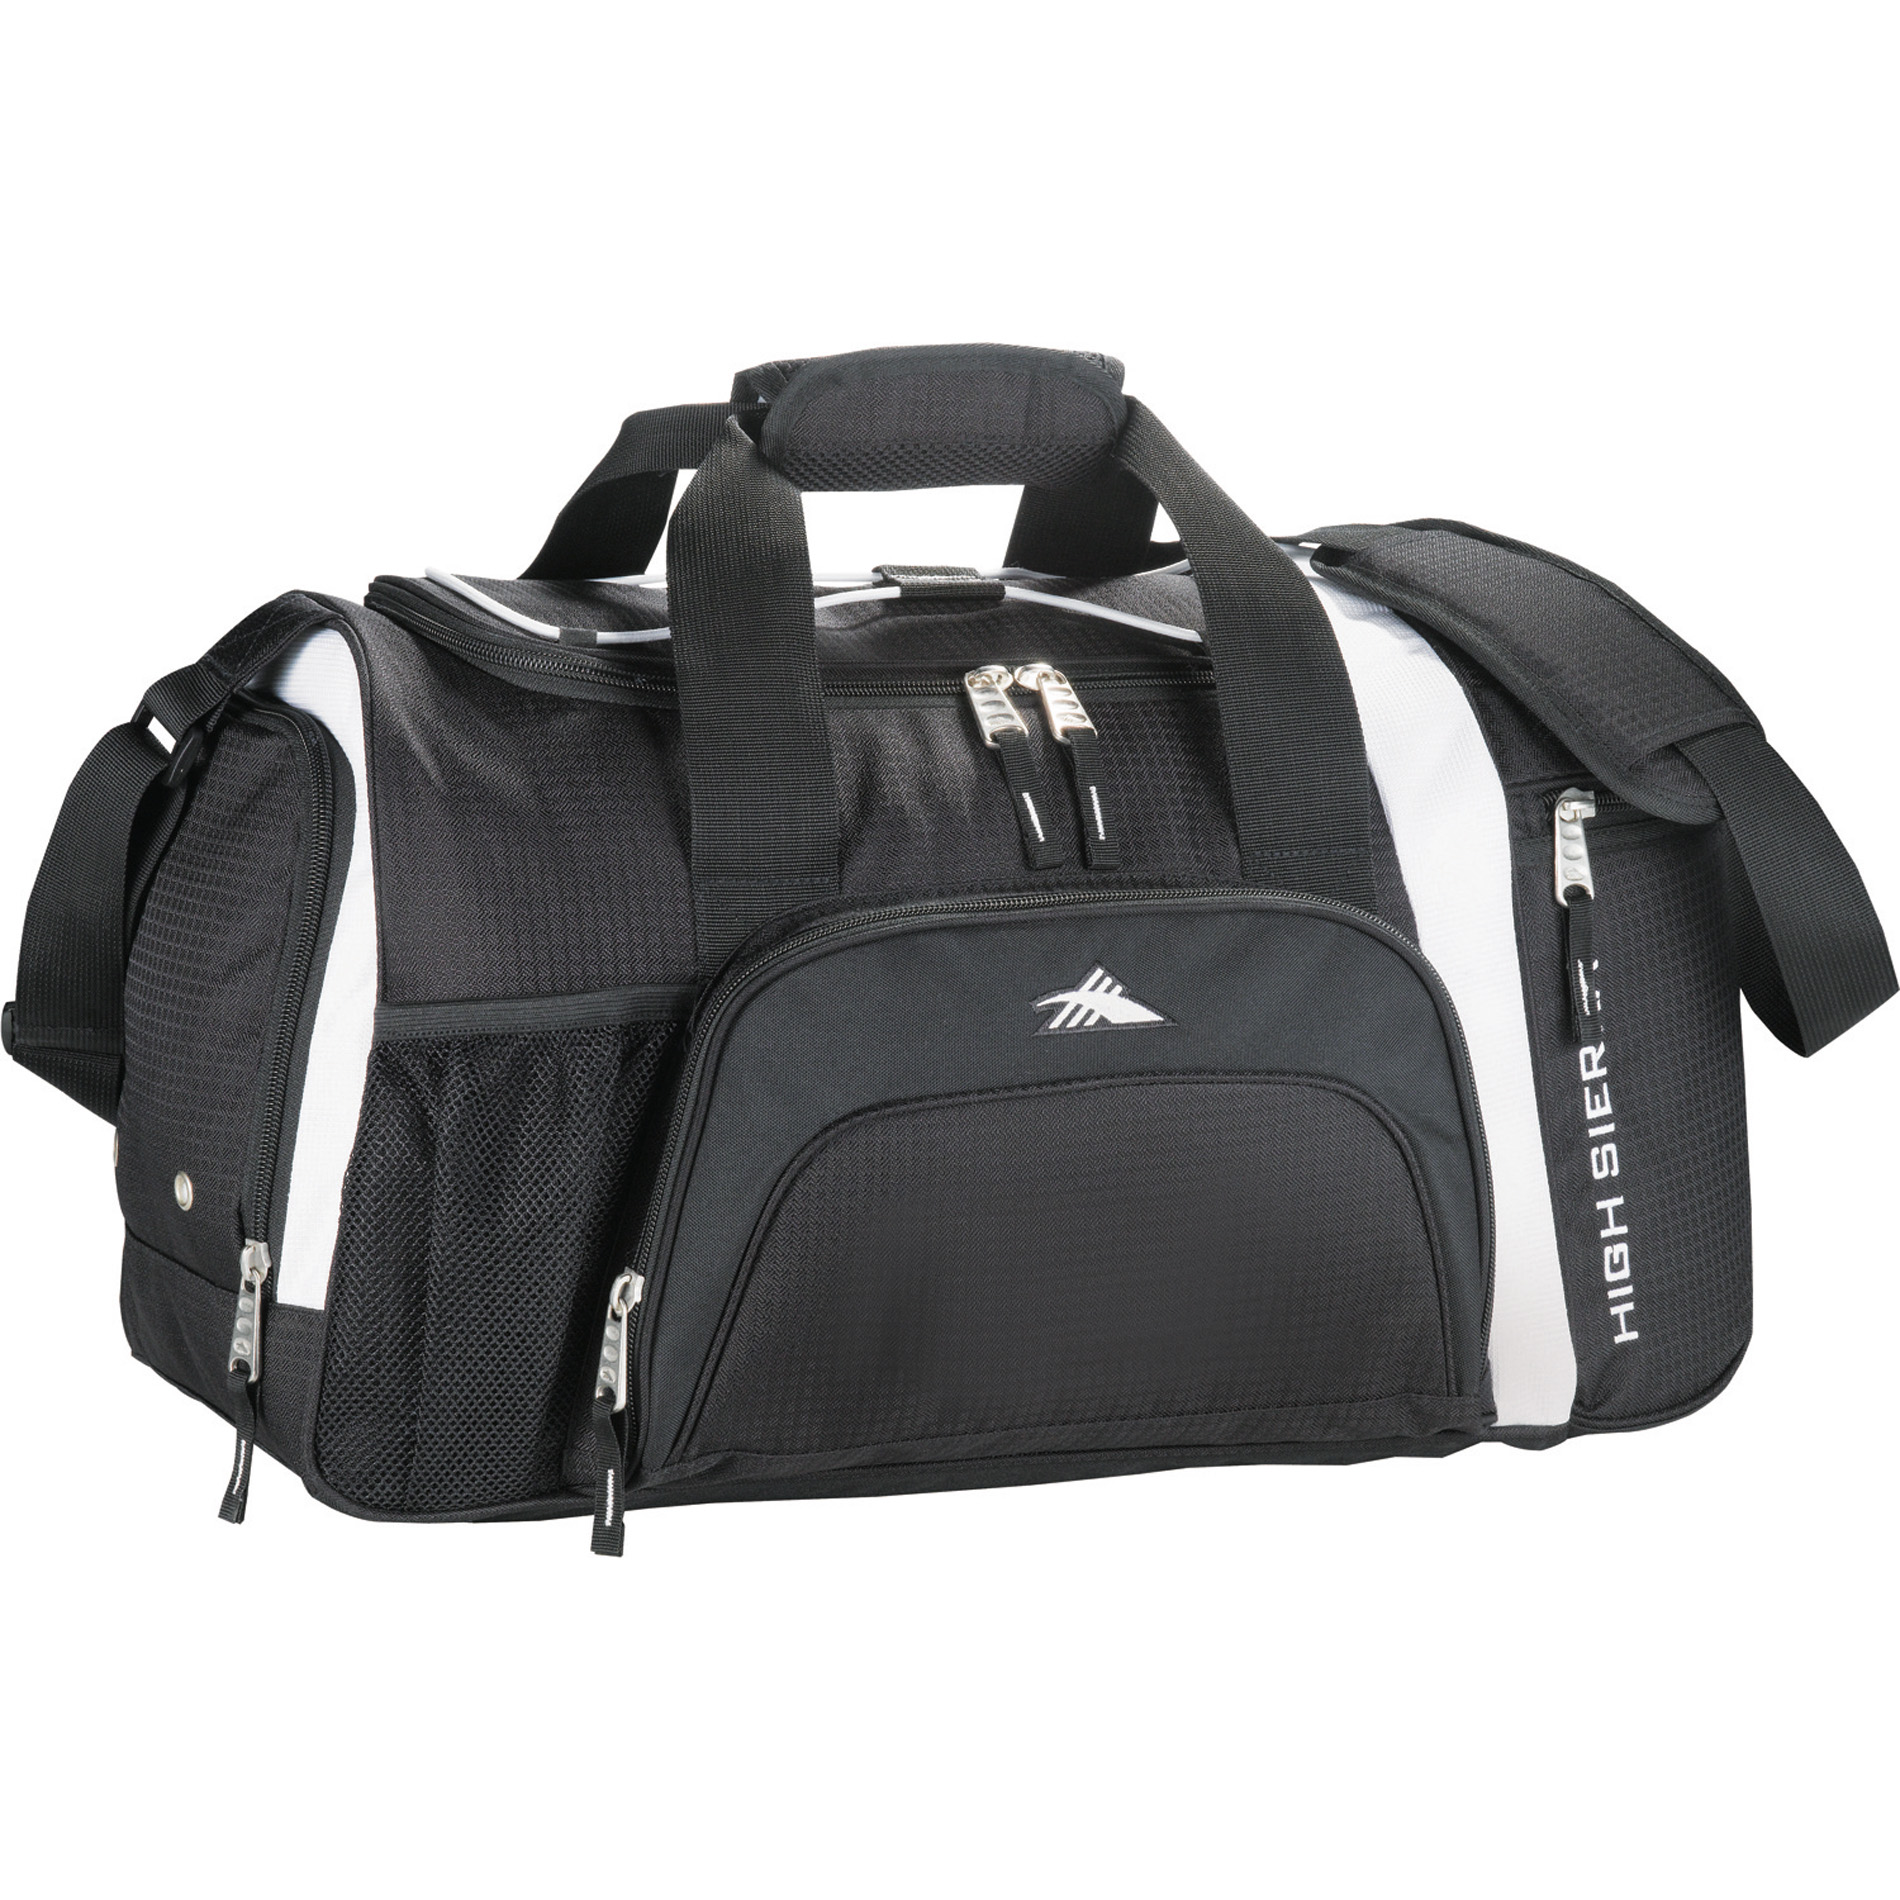 "High Sierra 8051-80 - 22"" Garrett Sport Duffel Bag"